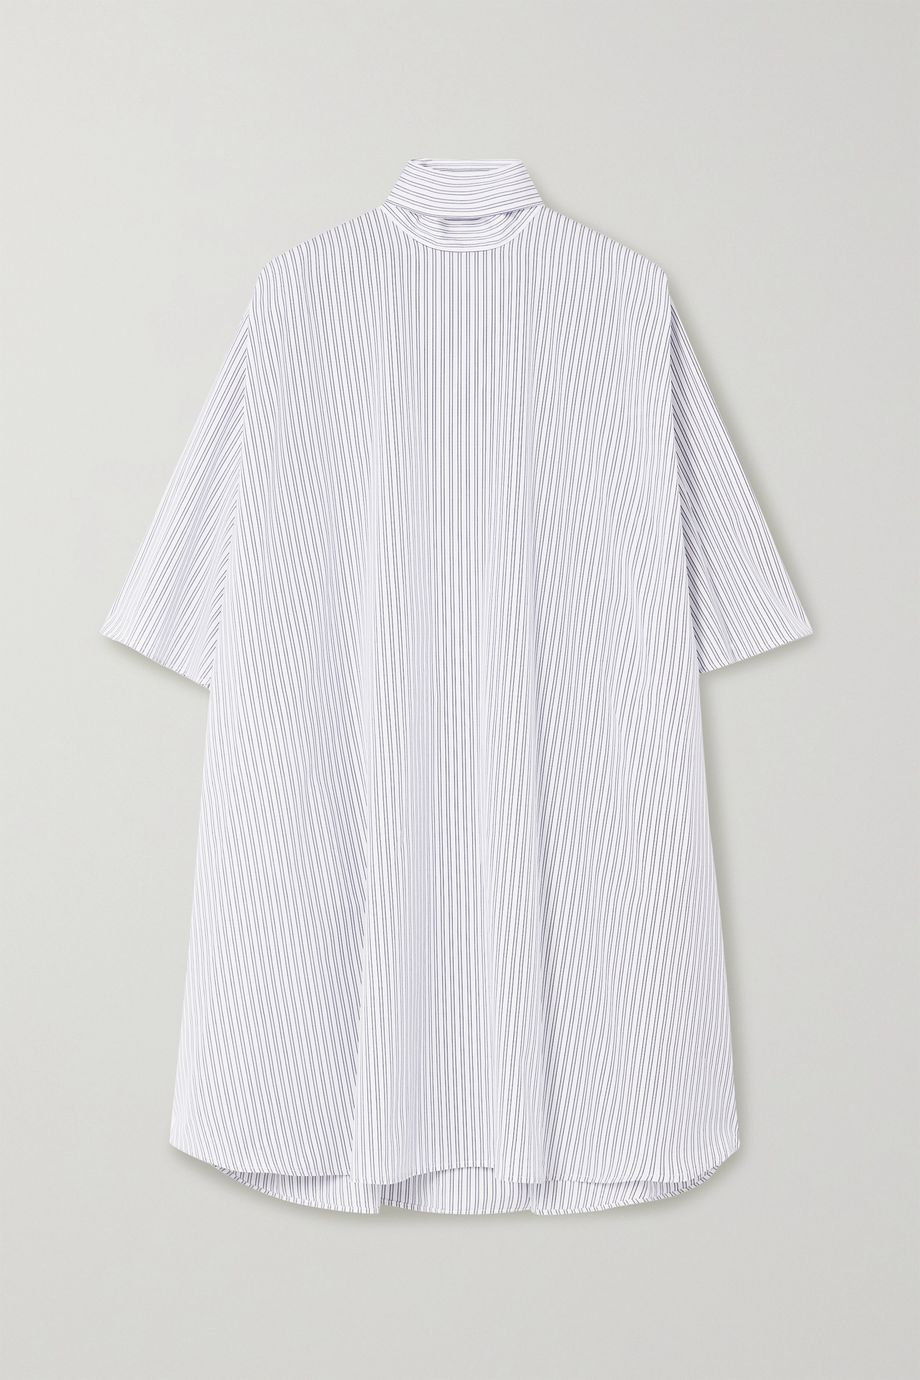 Givenchy Oversized tie-neck striped cotton-poplin mini dress